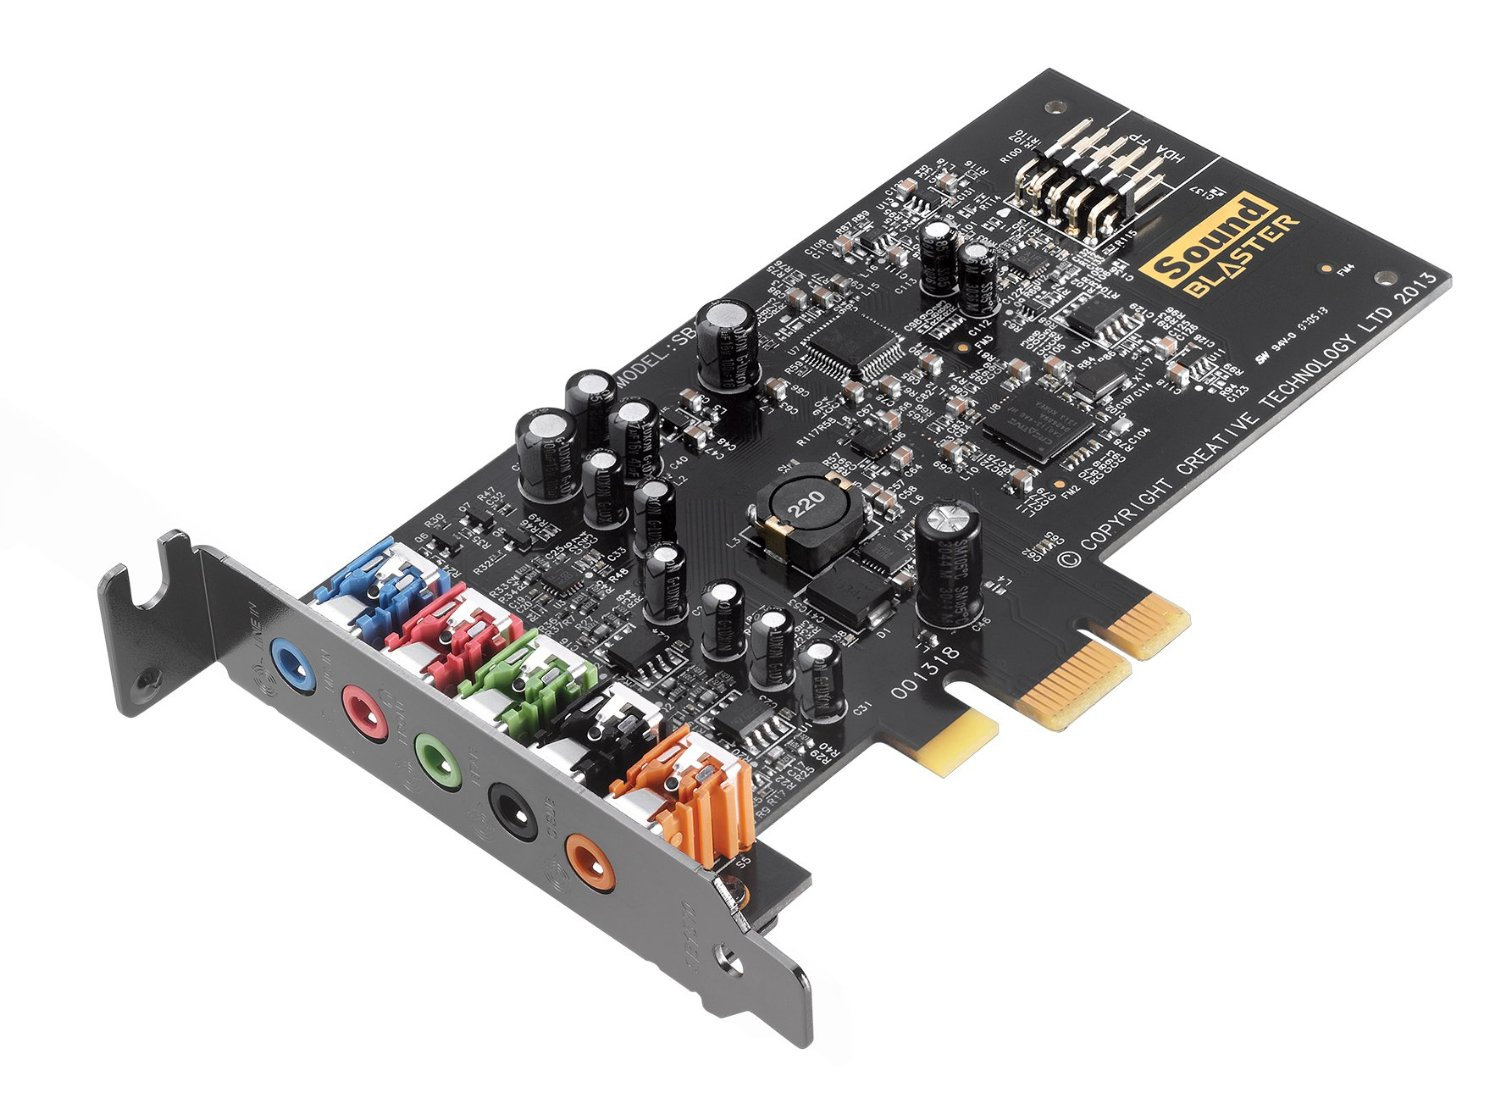 Creative SBI5-FX sound card